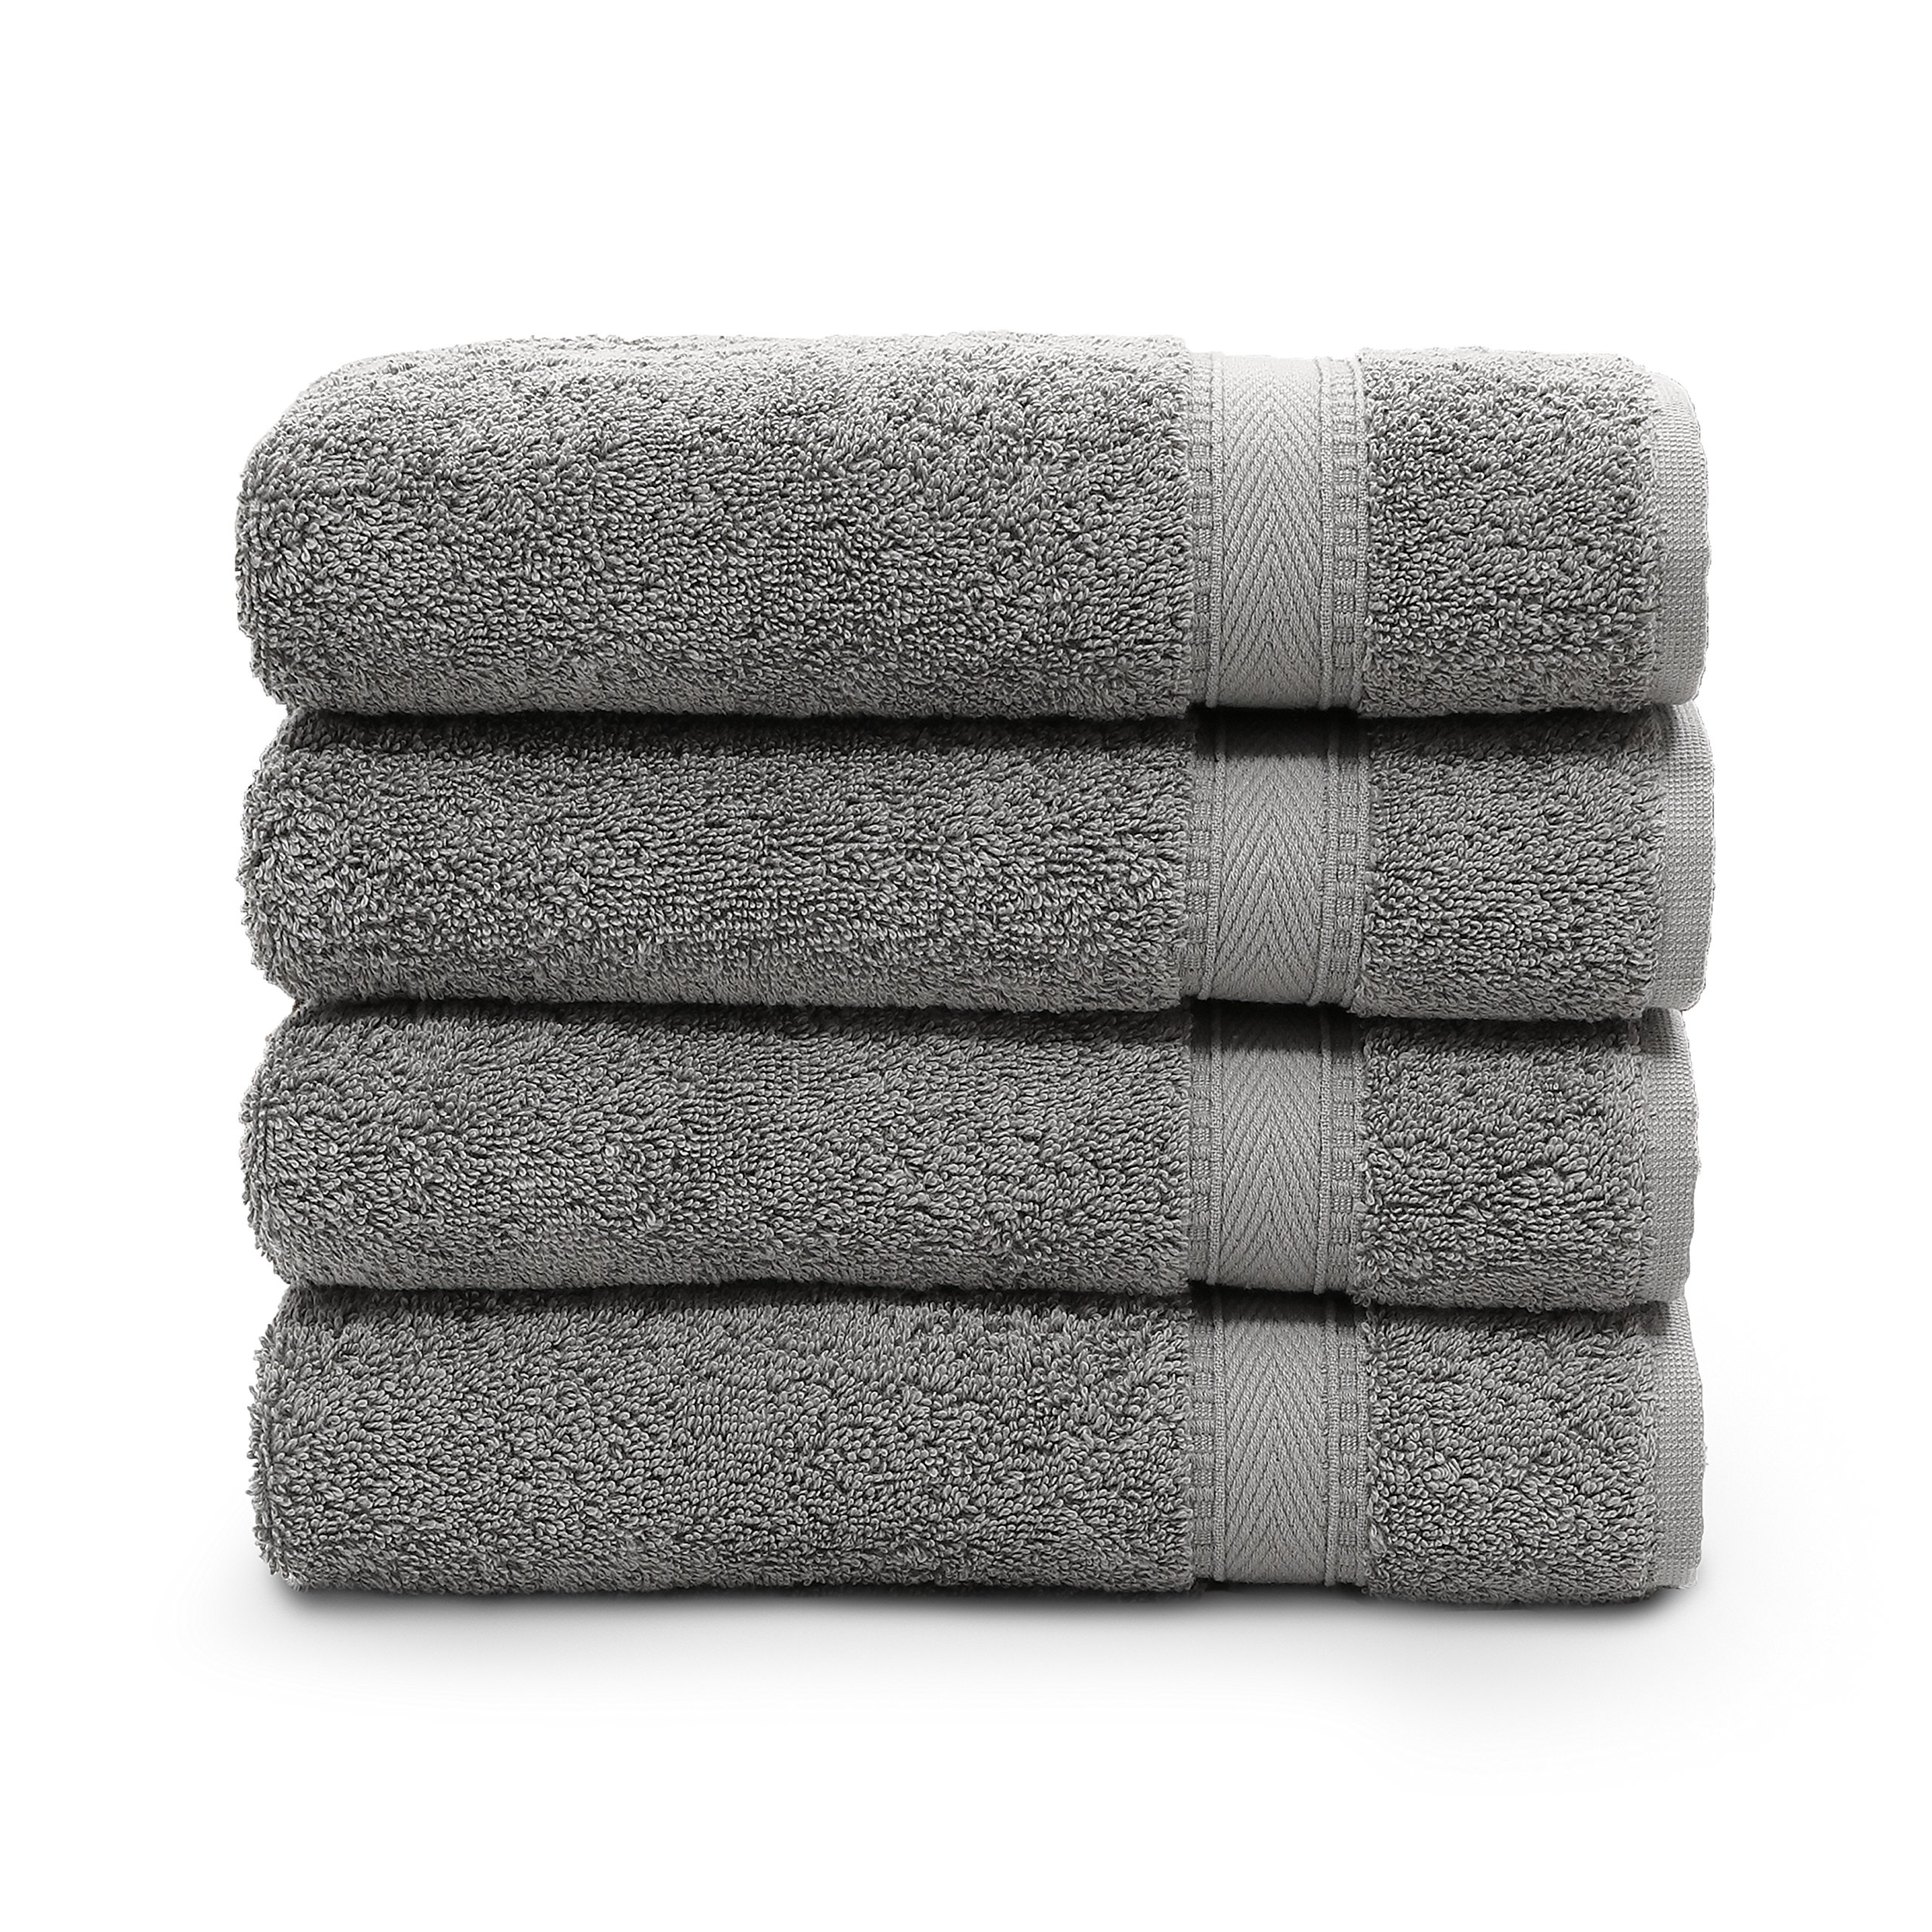 Linum Home Textiles SN96-4HT Bath Towel, Dark Grey